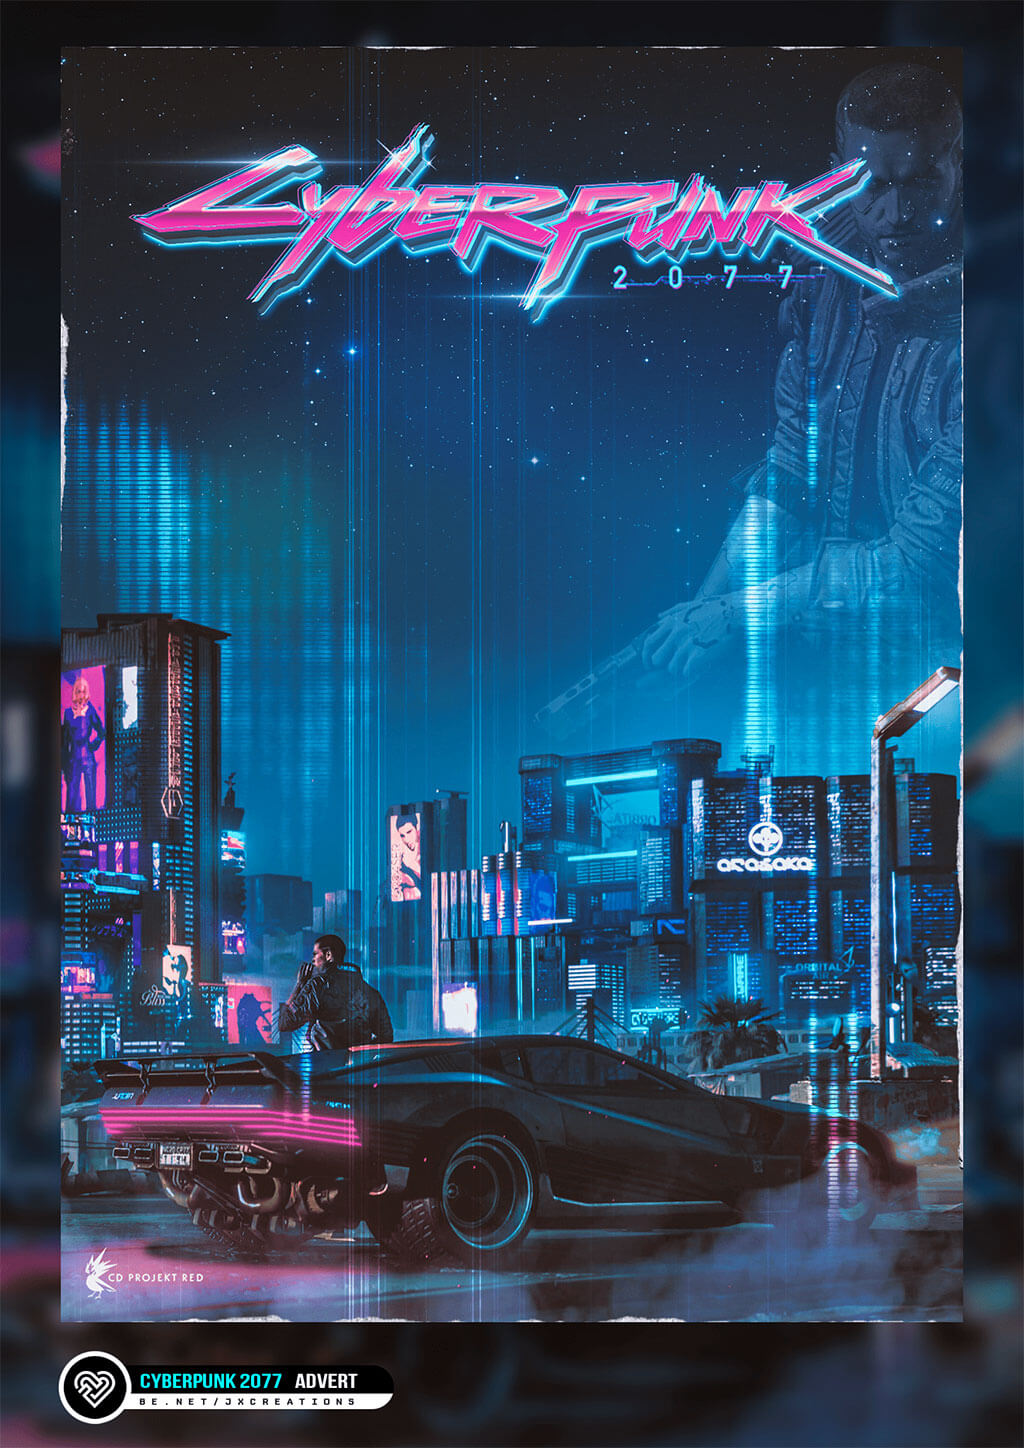 Cyberpunk 2077 Fan Art by Jasmine Ford